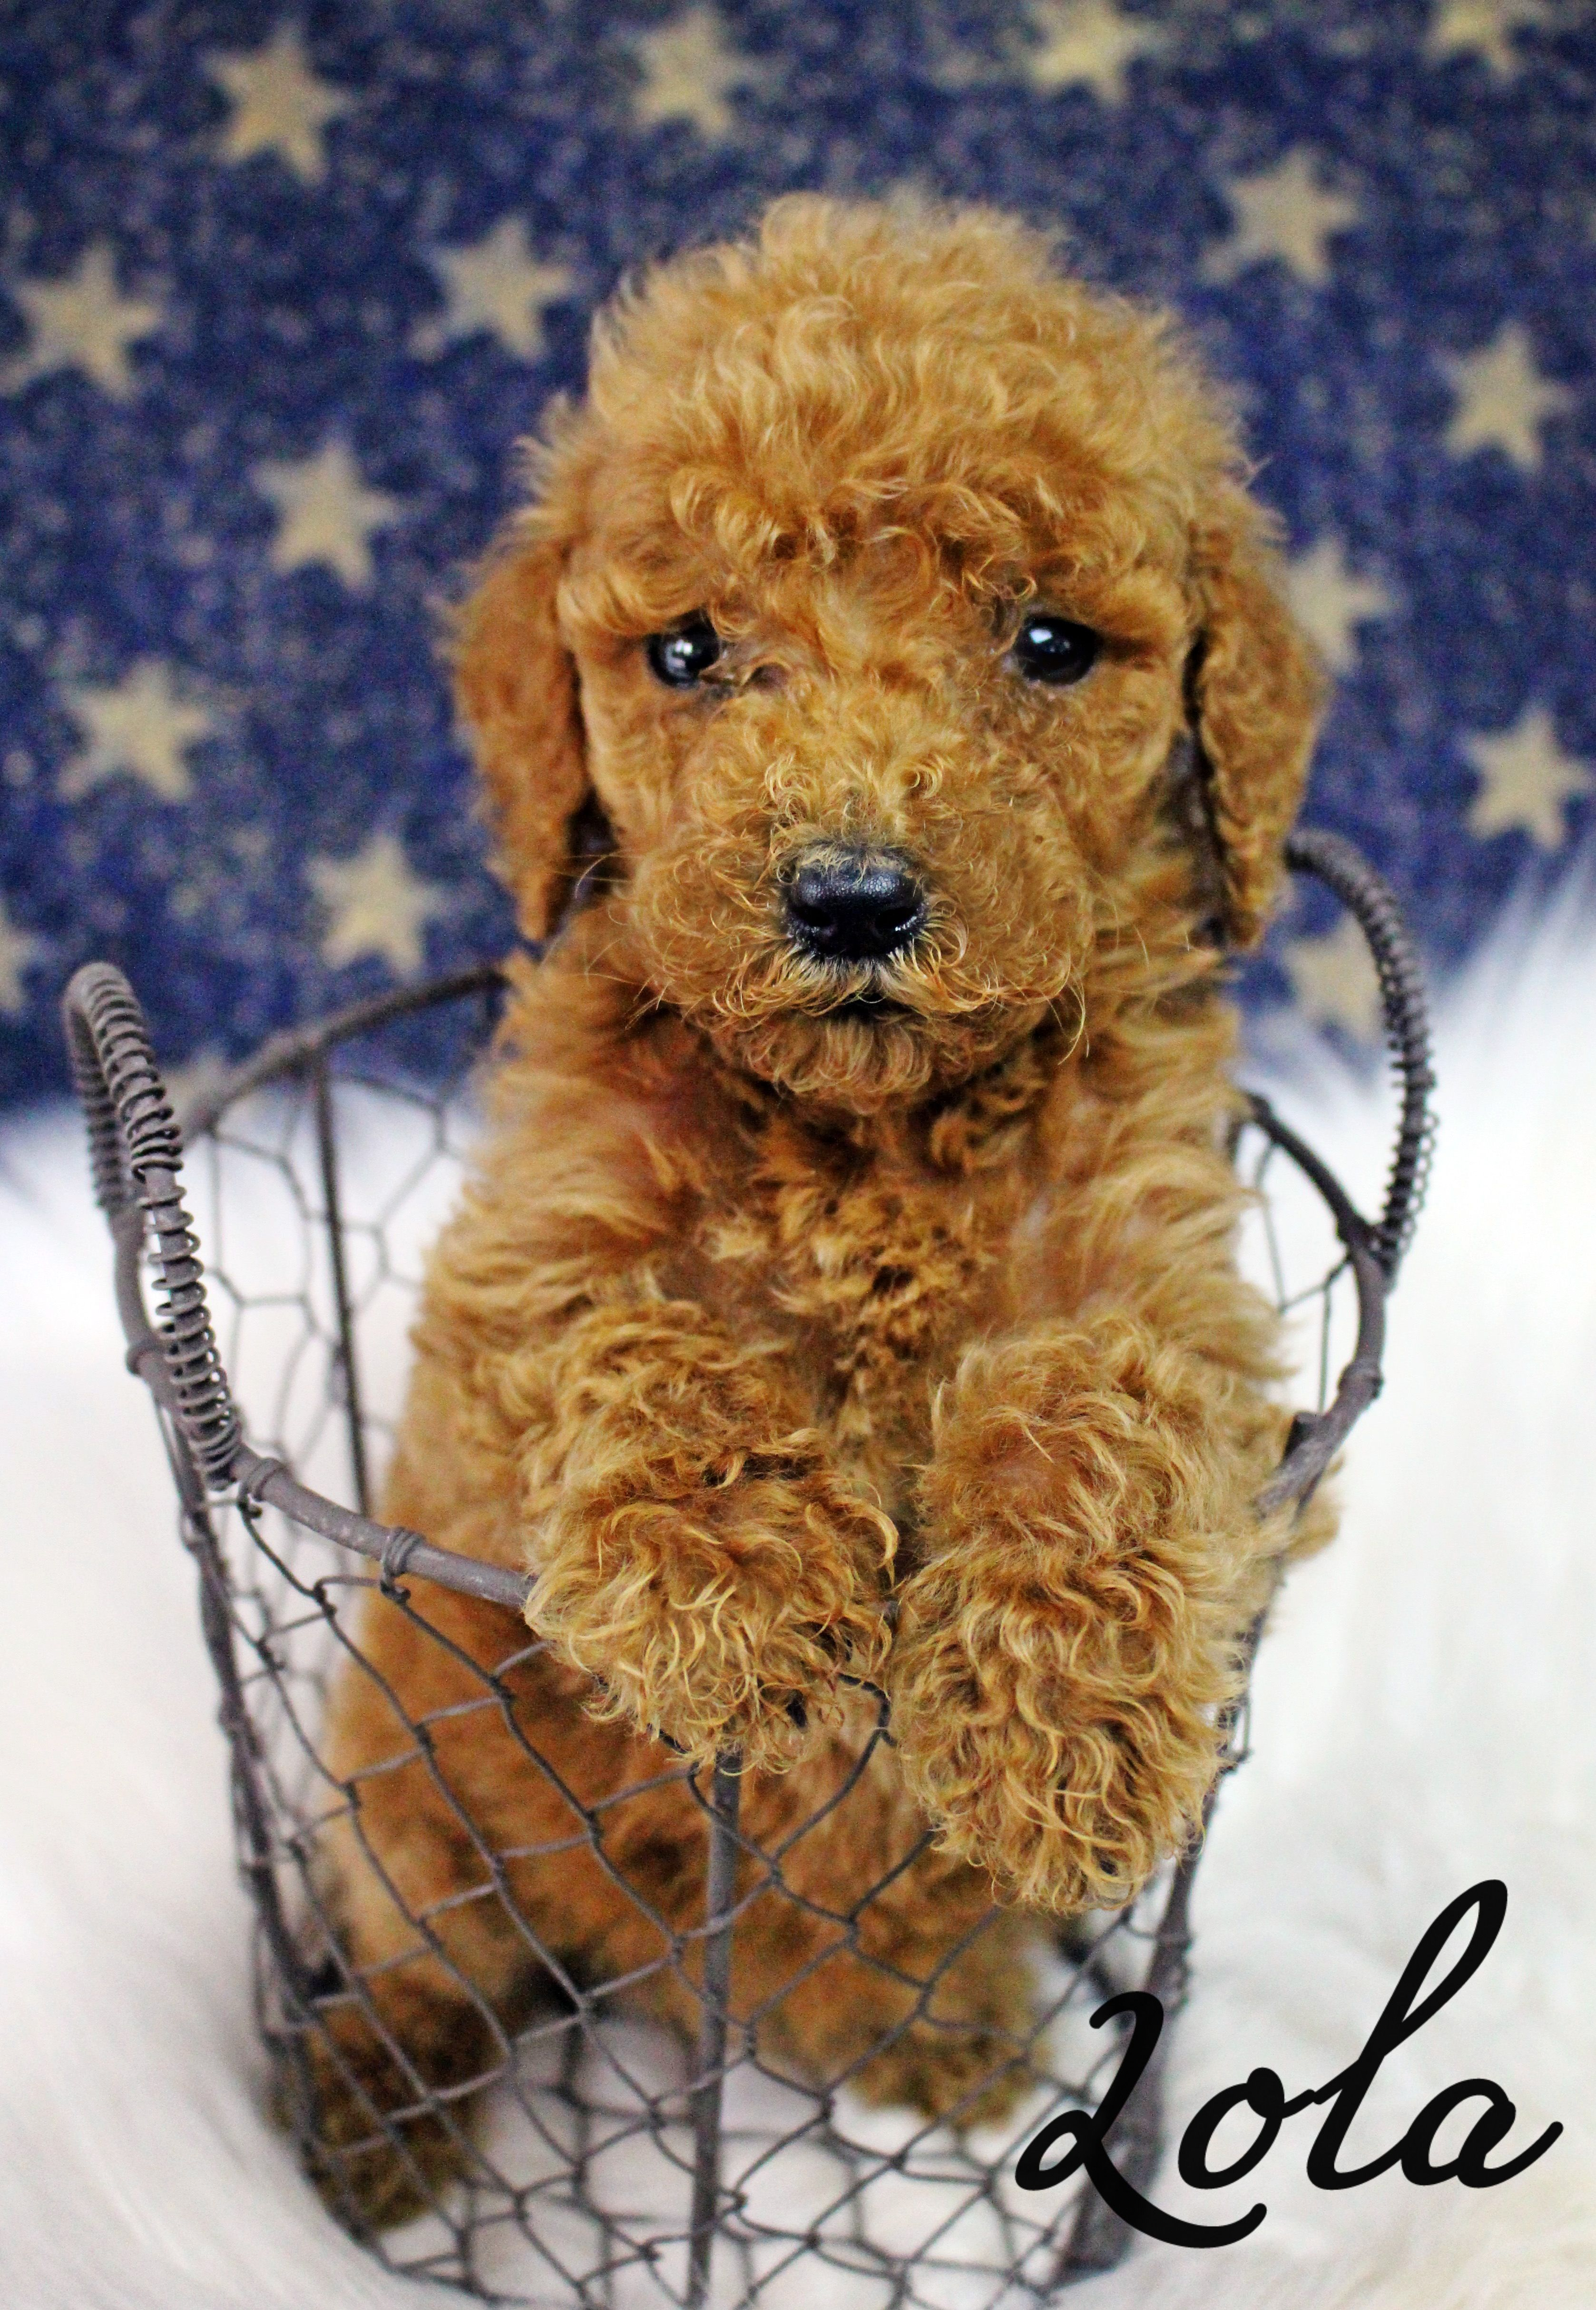 Small Akc Standard Poodle Puppy Red Apricot Fluffy Puppy Pet